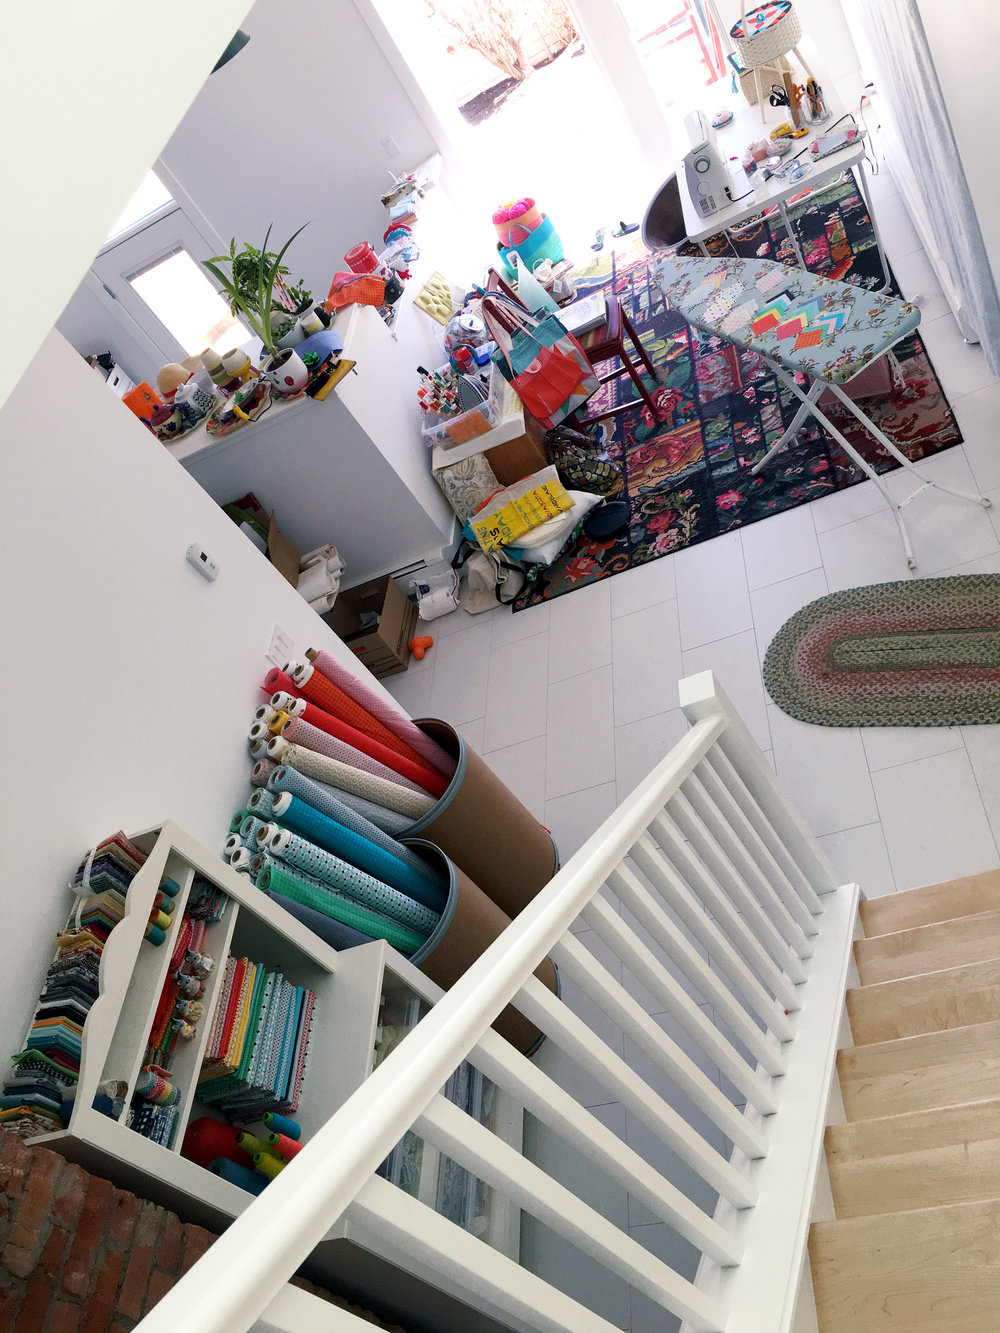 Here's an overview of the sewing area. It's at the base of the stairs and opens out to the deck. The neat areas are on the perimeter since I was taking pictures for the Look Book—everything else was piled up in the middle!